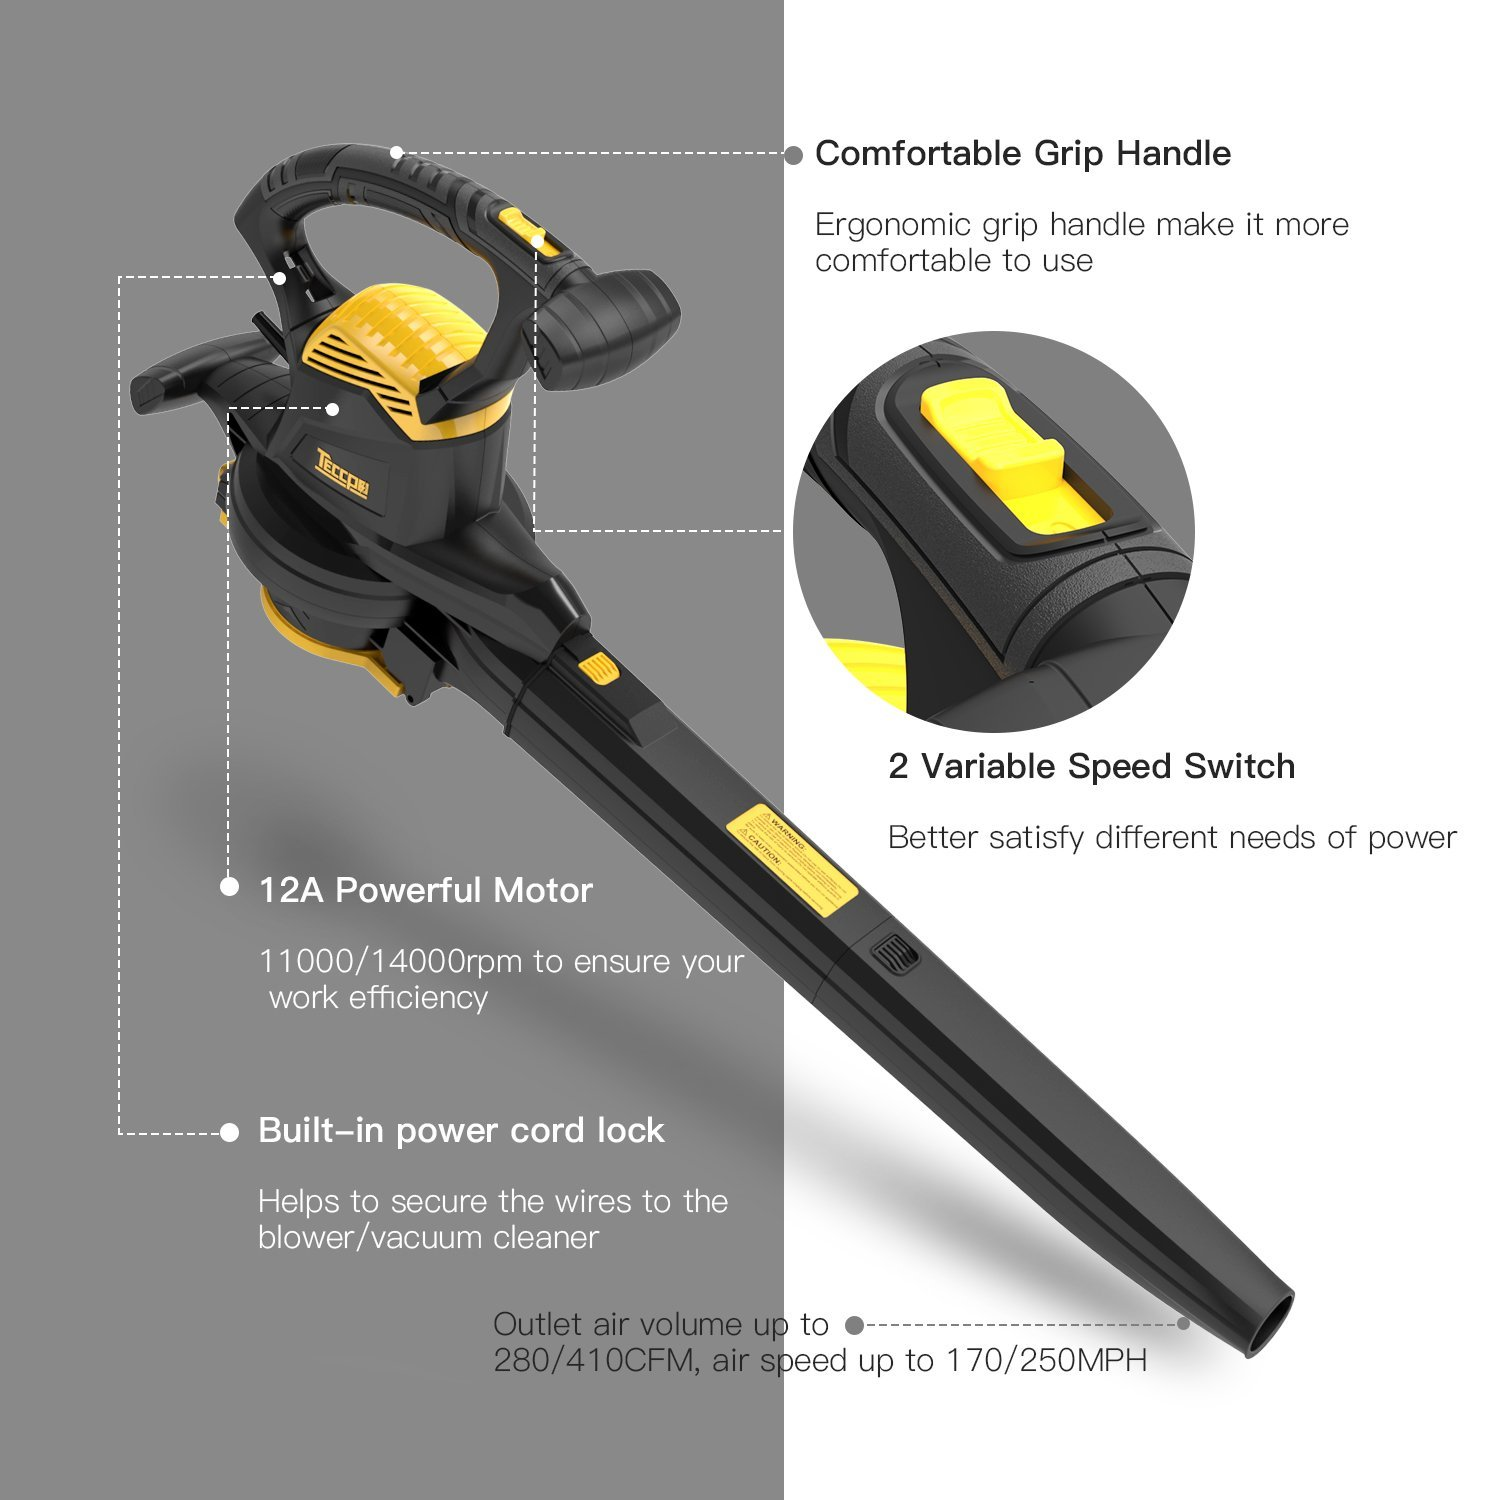 Leaf Blower Vacuum, TECCPO TABV01G 12-Amp 250MPH 410CFM 3 in 1 corded electric Two-Speed Sweeper/Vac/Mulcher, Plastic Impeller Metal Blade, Ideal for Lawn and Garden by TECCPO (Image #2)